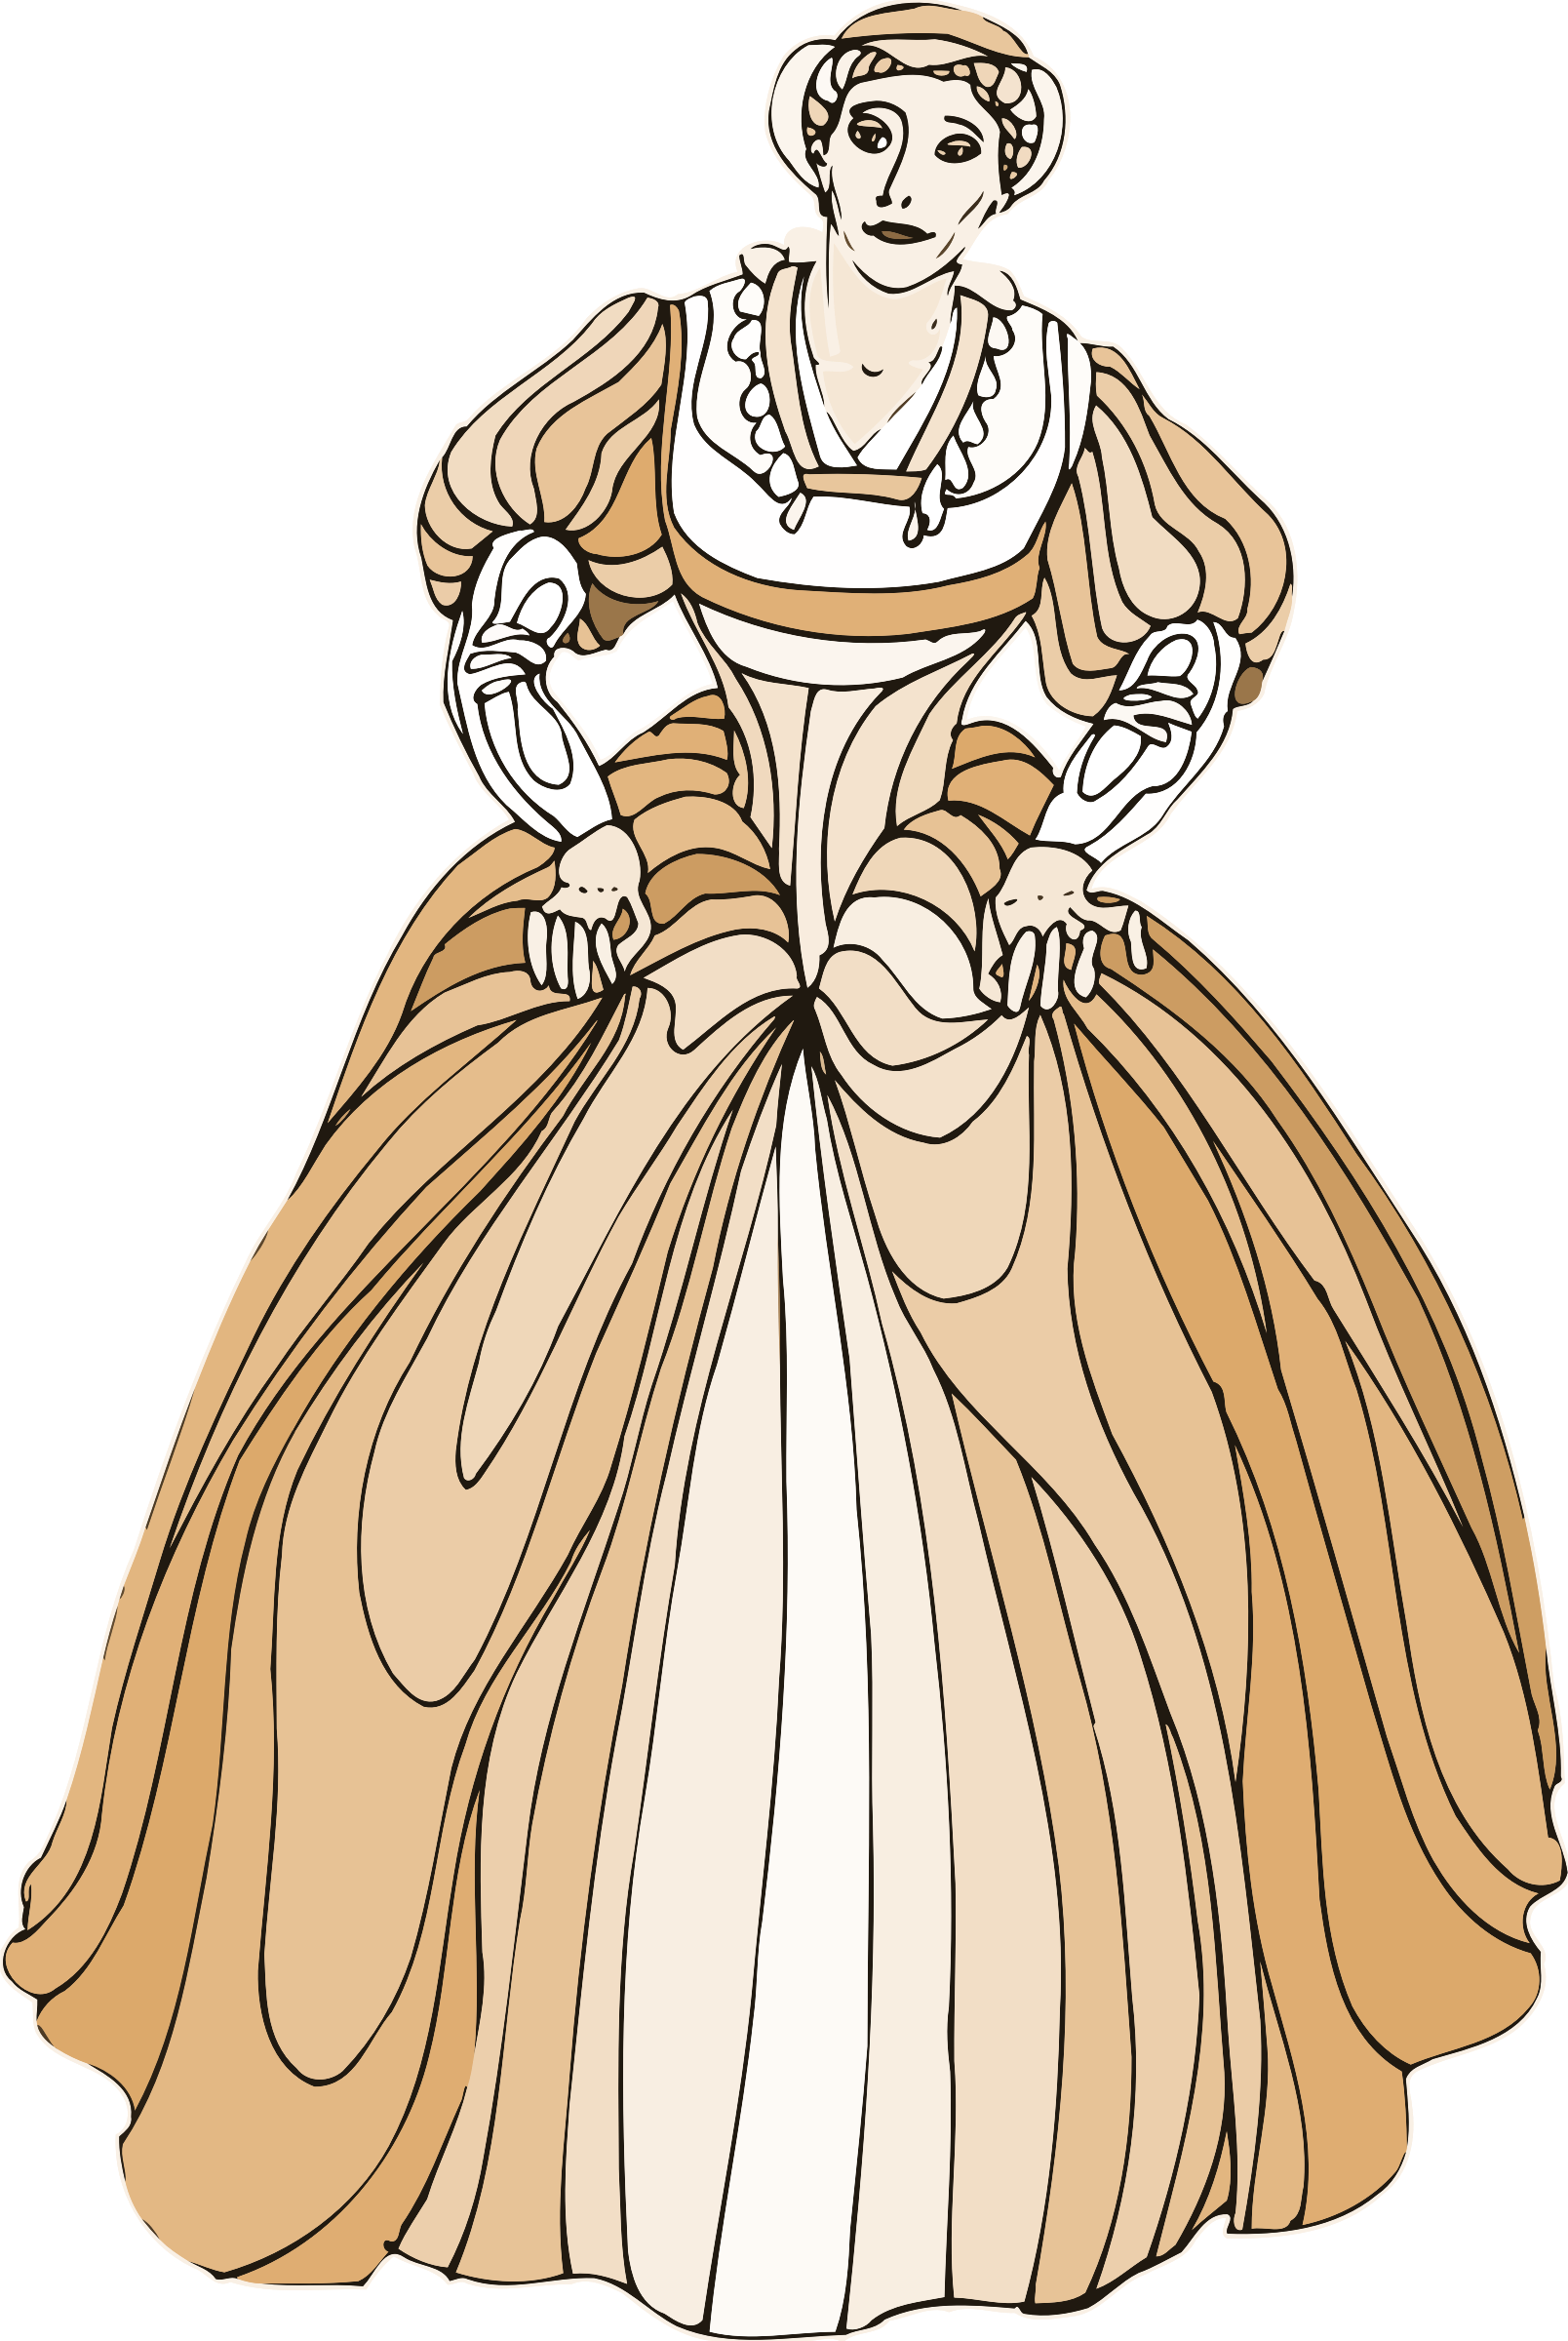 Shakespeare characters - Bianca by Firkin